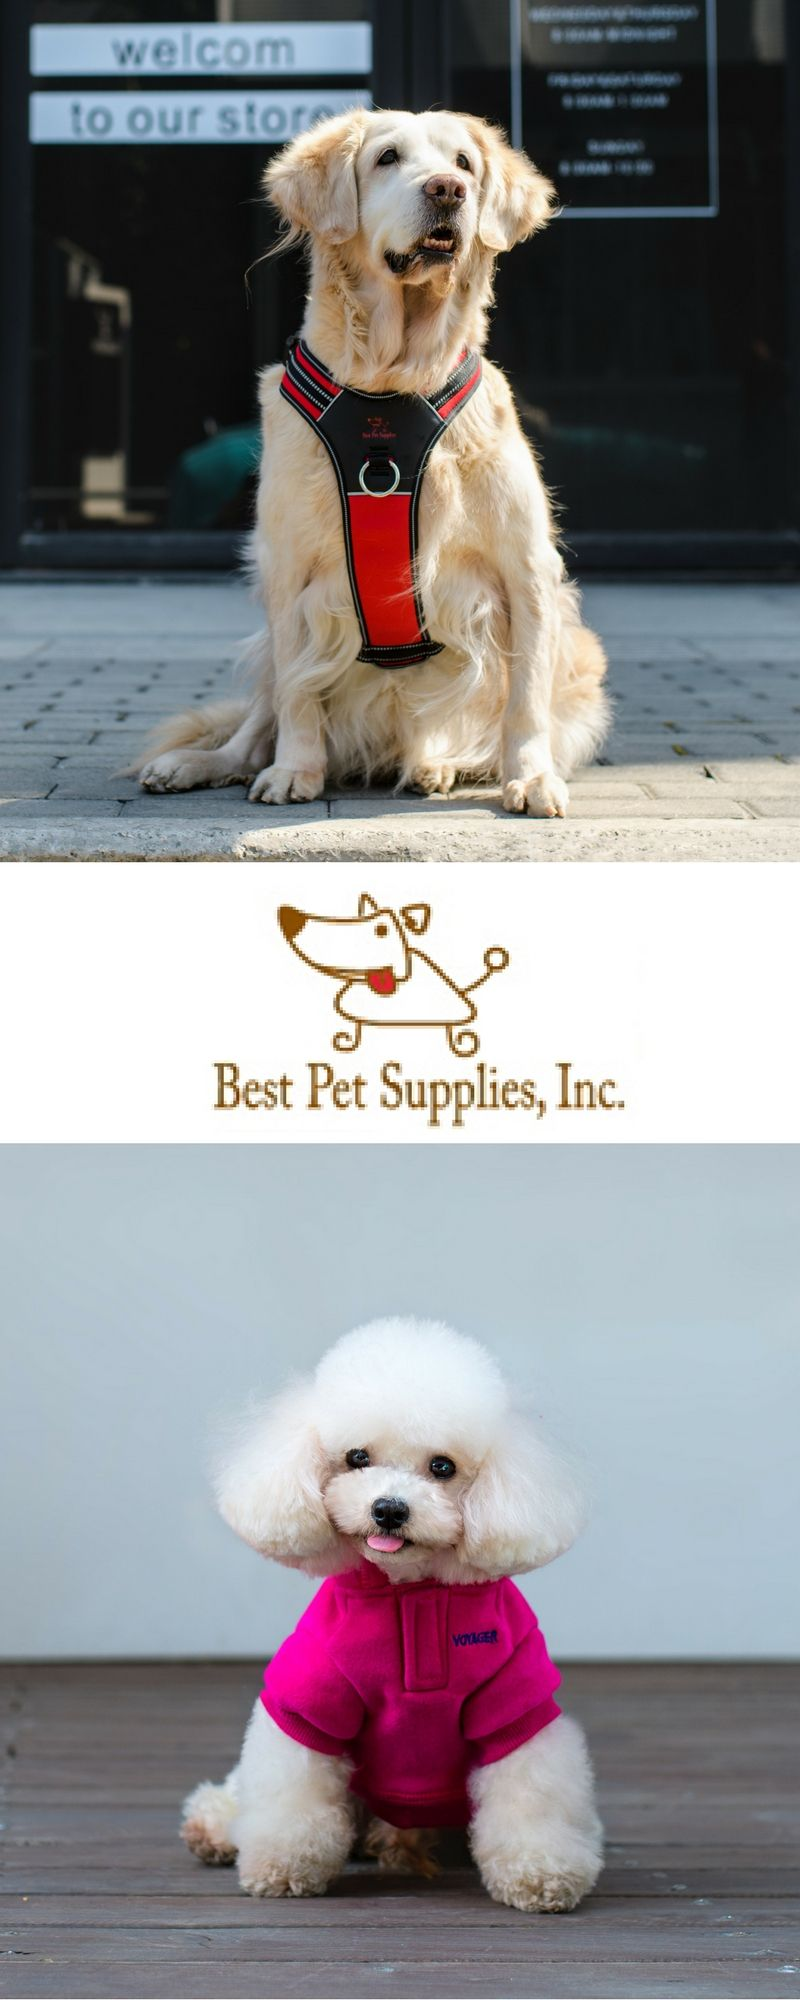 The World S Best Pet Supplies Now Available On Amazon Pets Pet Supplies Online Pet Supplies